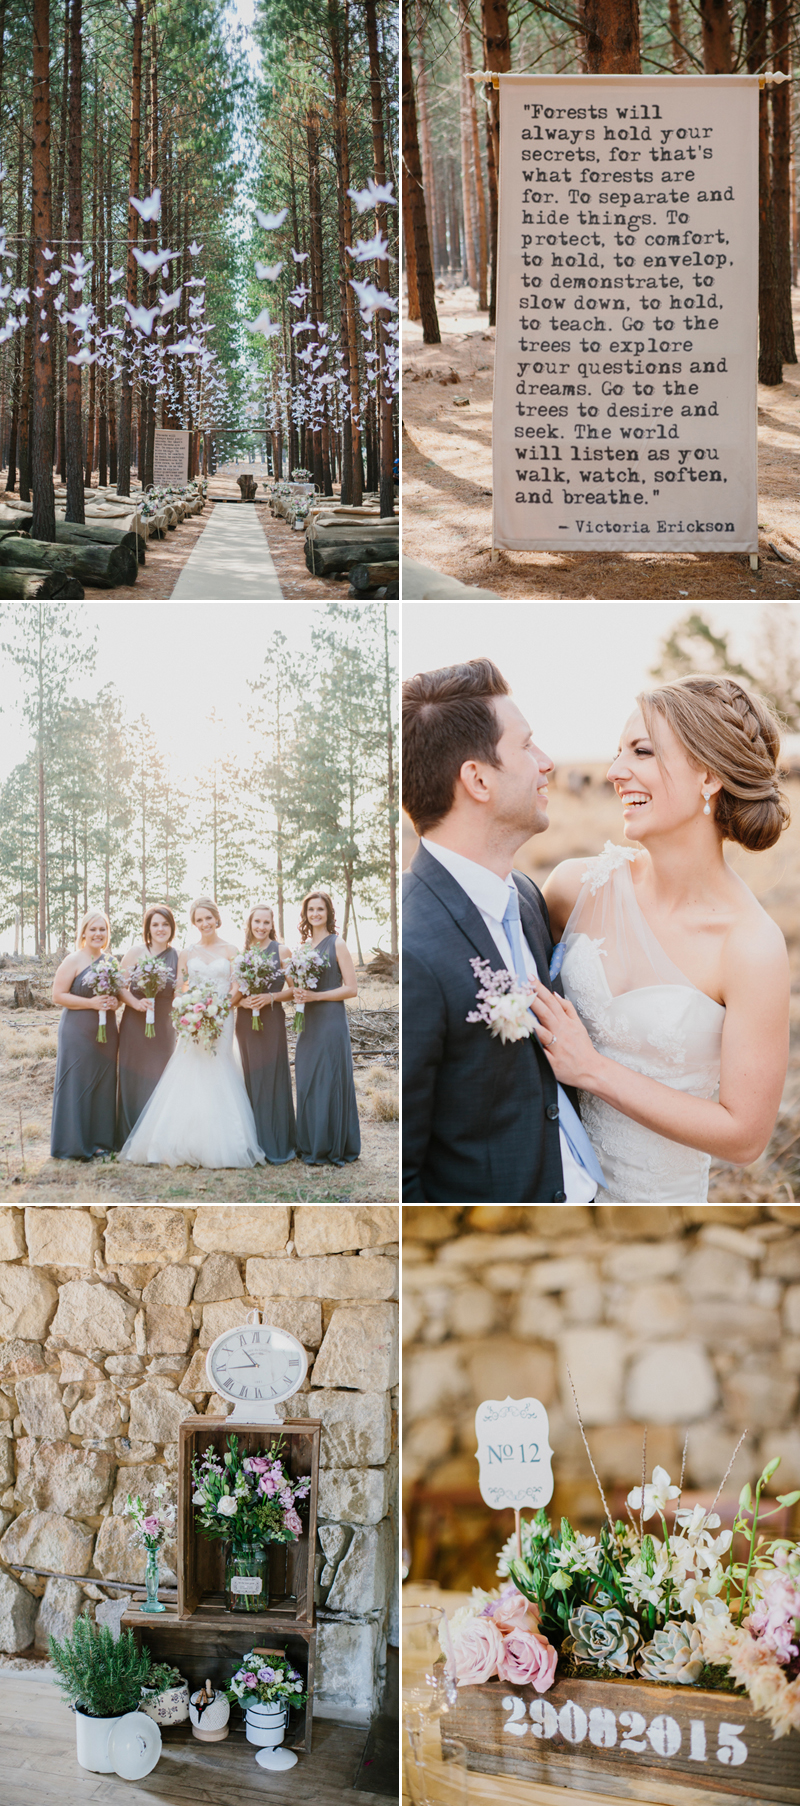 forestwedding06-Rustic Forest Wedding (photo by Carolien & Ben)